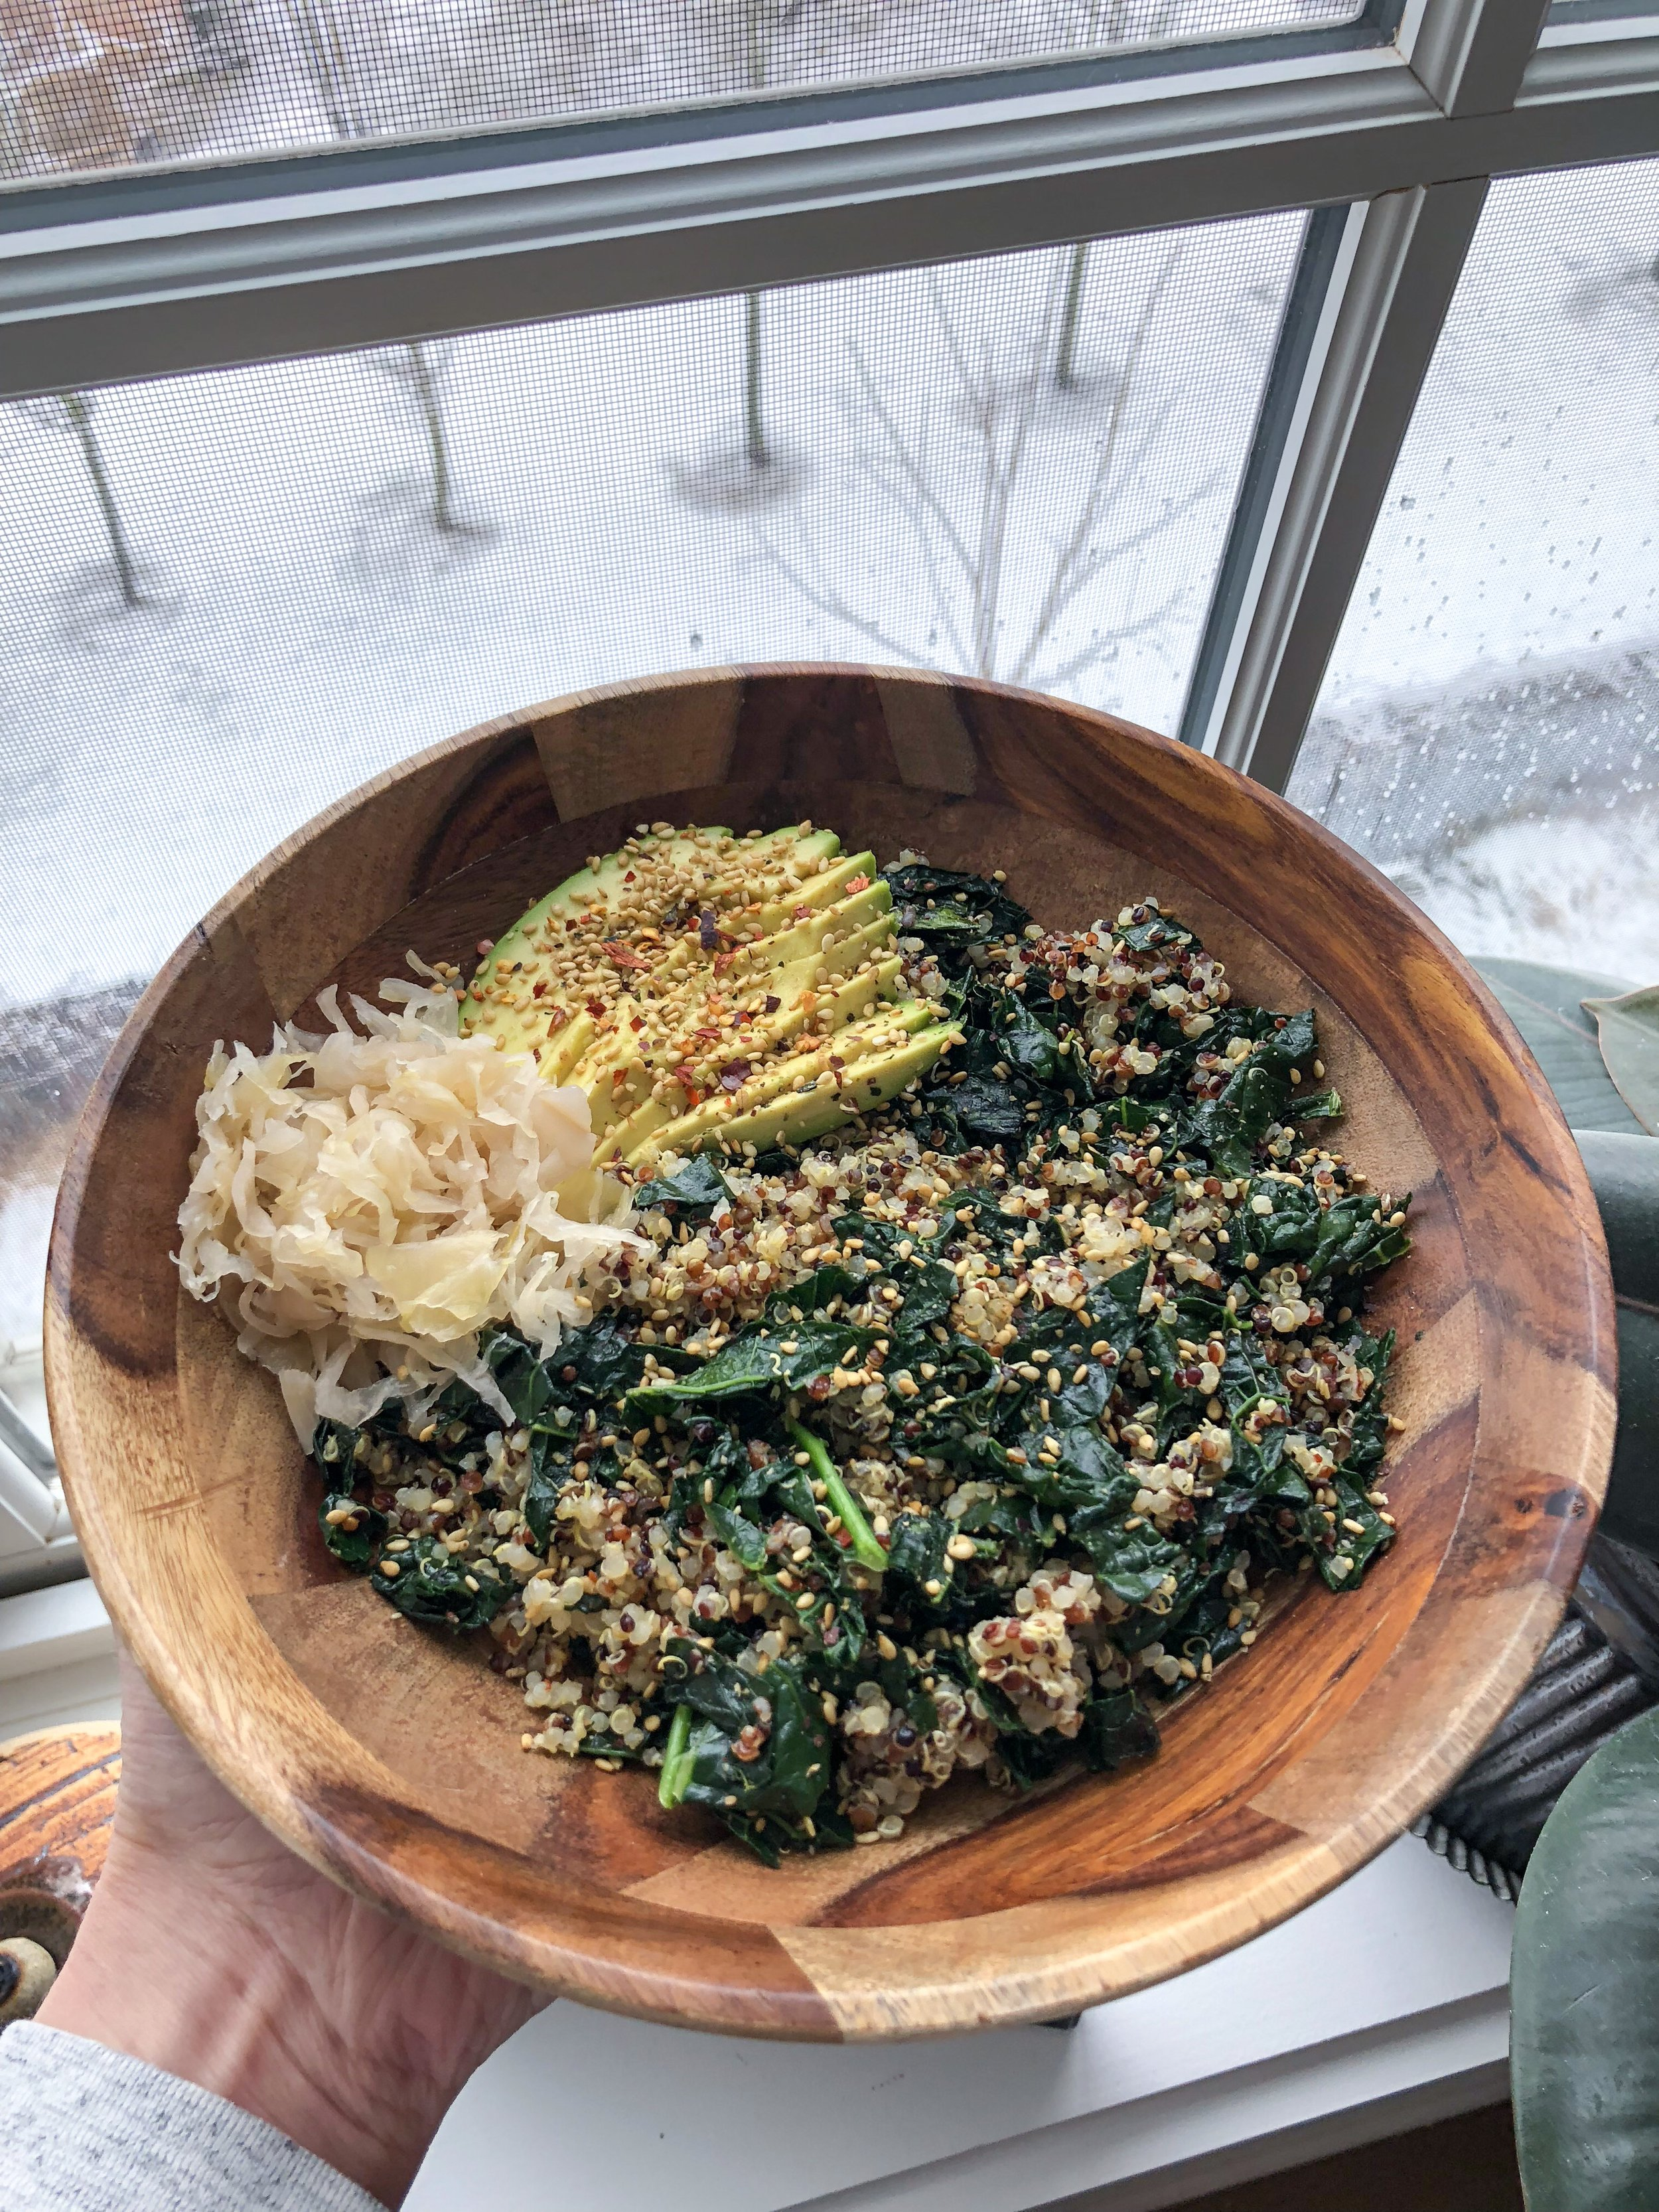 Quinoa and Greens Stir-fry - The snow day last week meant lots of warming bowls. Here I sautéed the chopped kale with a bit of olive oil and coconut aminos until wilted, then added in the cooked quinoa and warmed through. Topped with a good amount of gomasio and served with a side of sauerkraut and avocado.